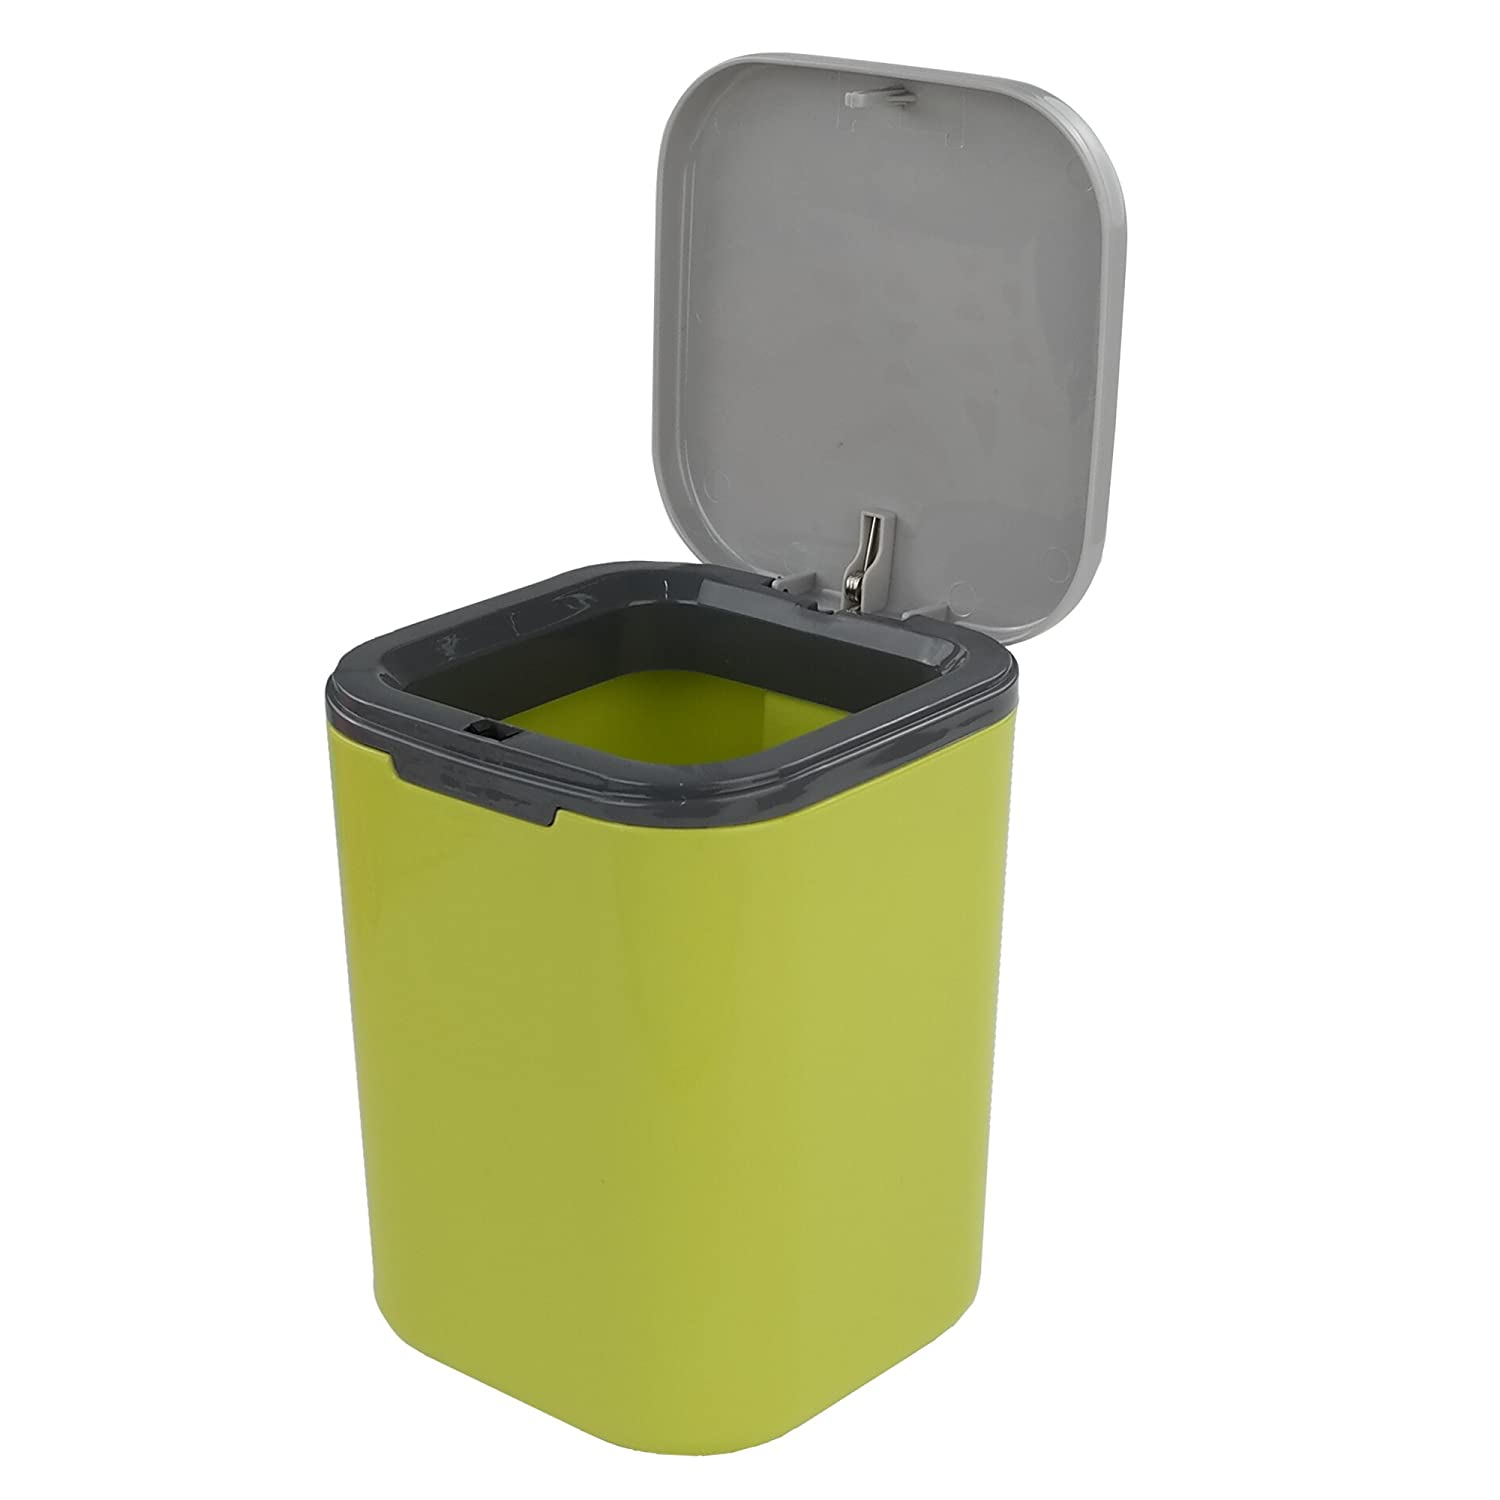 Hommp Tiny Countertop Trash Can, 0.5 Gallon with Push-Buttom (Green Yellow) Homeproduct miniG